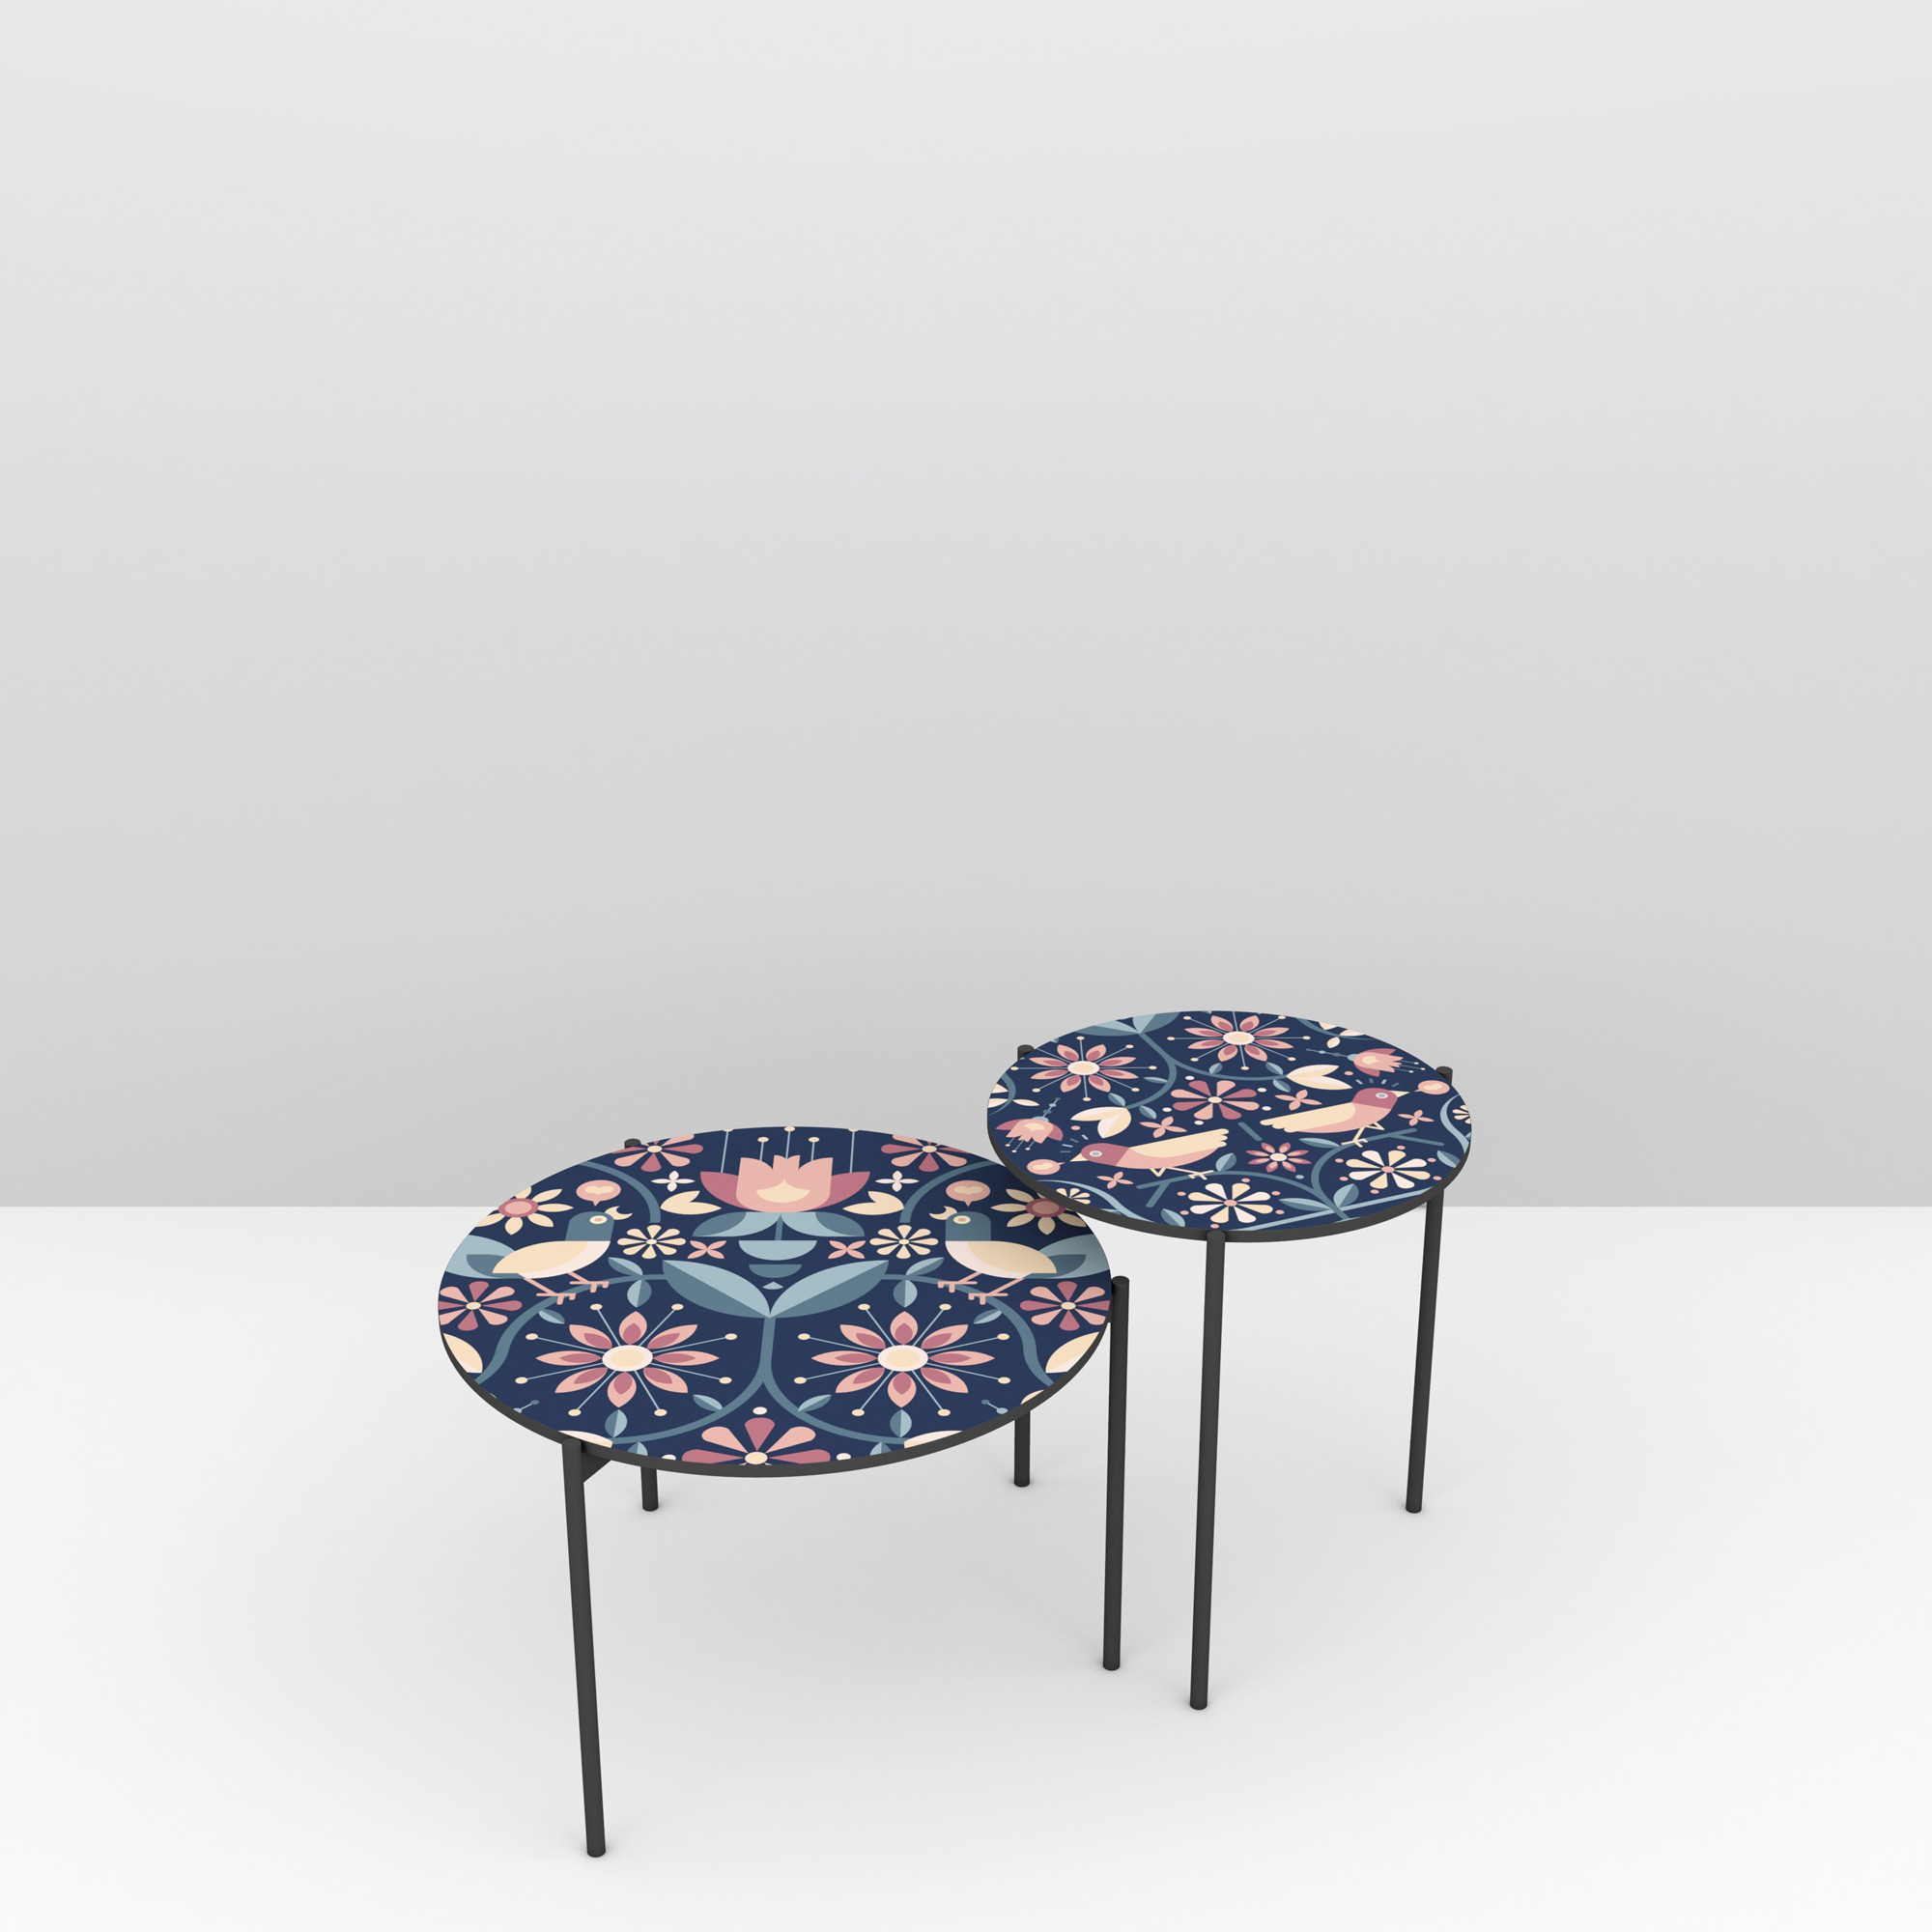 Pictoom Furniture Art Marogna Graphic Illustrator Furnishings Francesco Poroli